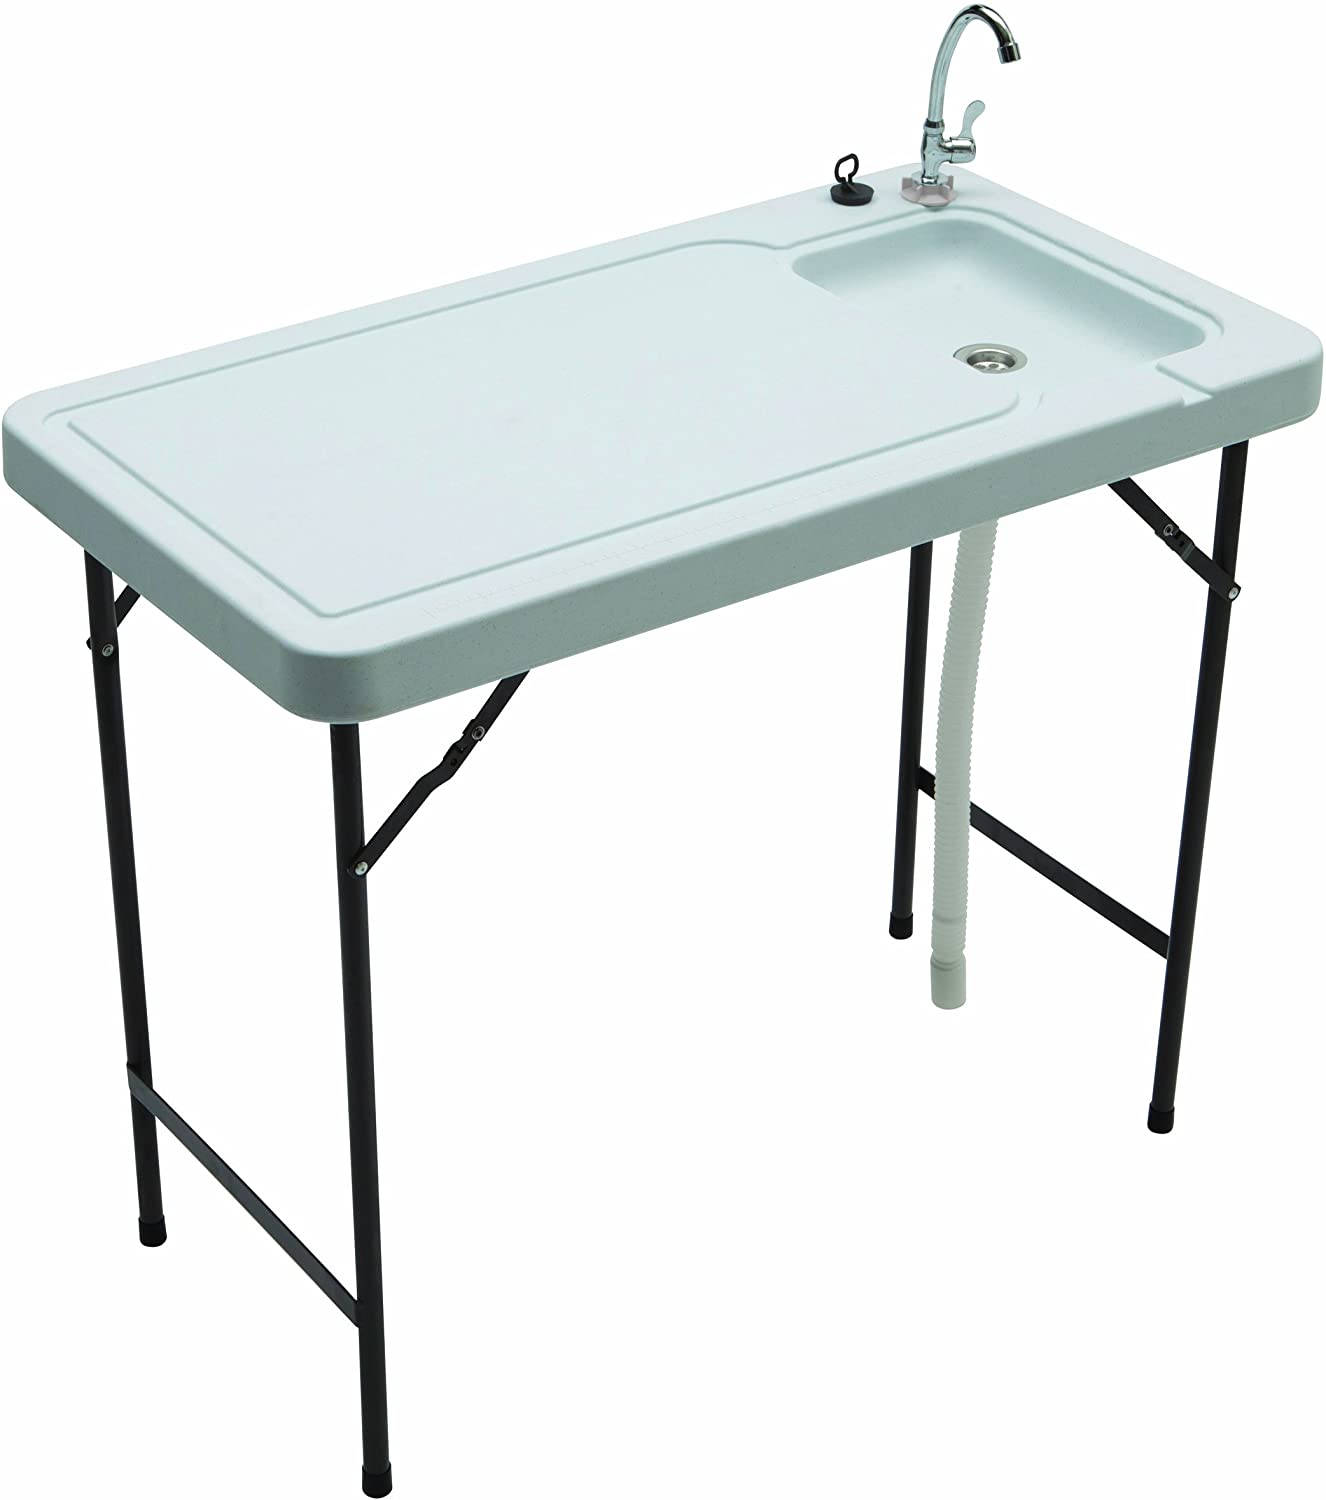 Best Fish Cleaning Tables 2021 Reviews 2